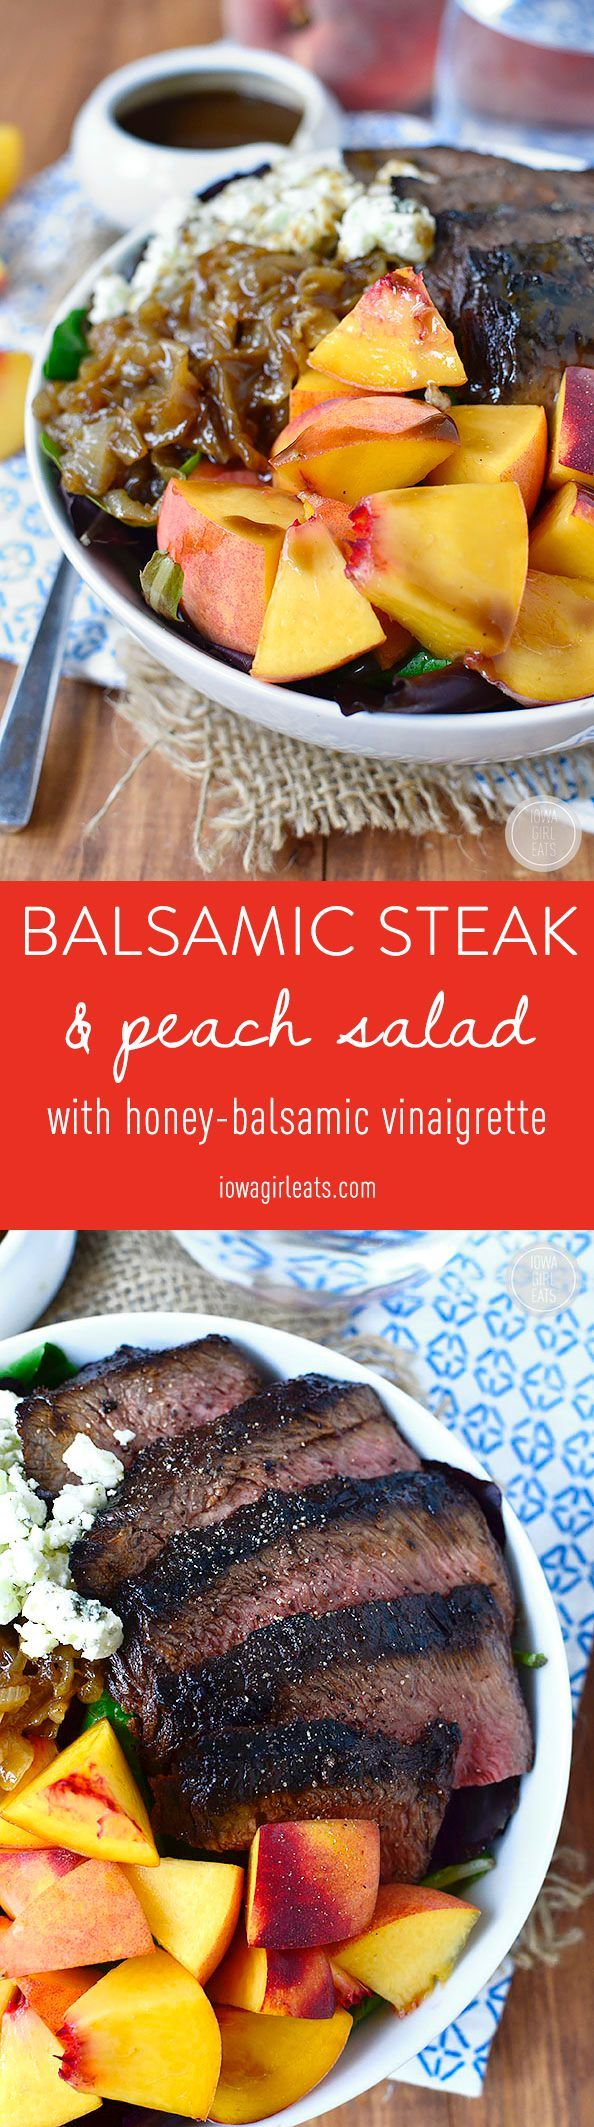 Balsamic Steak and Peach Salad is a fresh and filling entree salad with the sweet and savory flavors of balsamic vinegar, peaches, and gorgonzola cheese. #glutenfree | iowagirleats.com